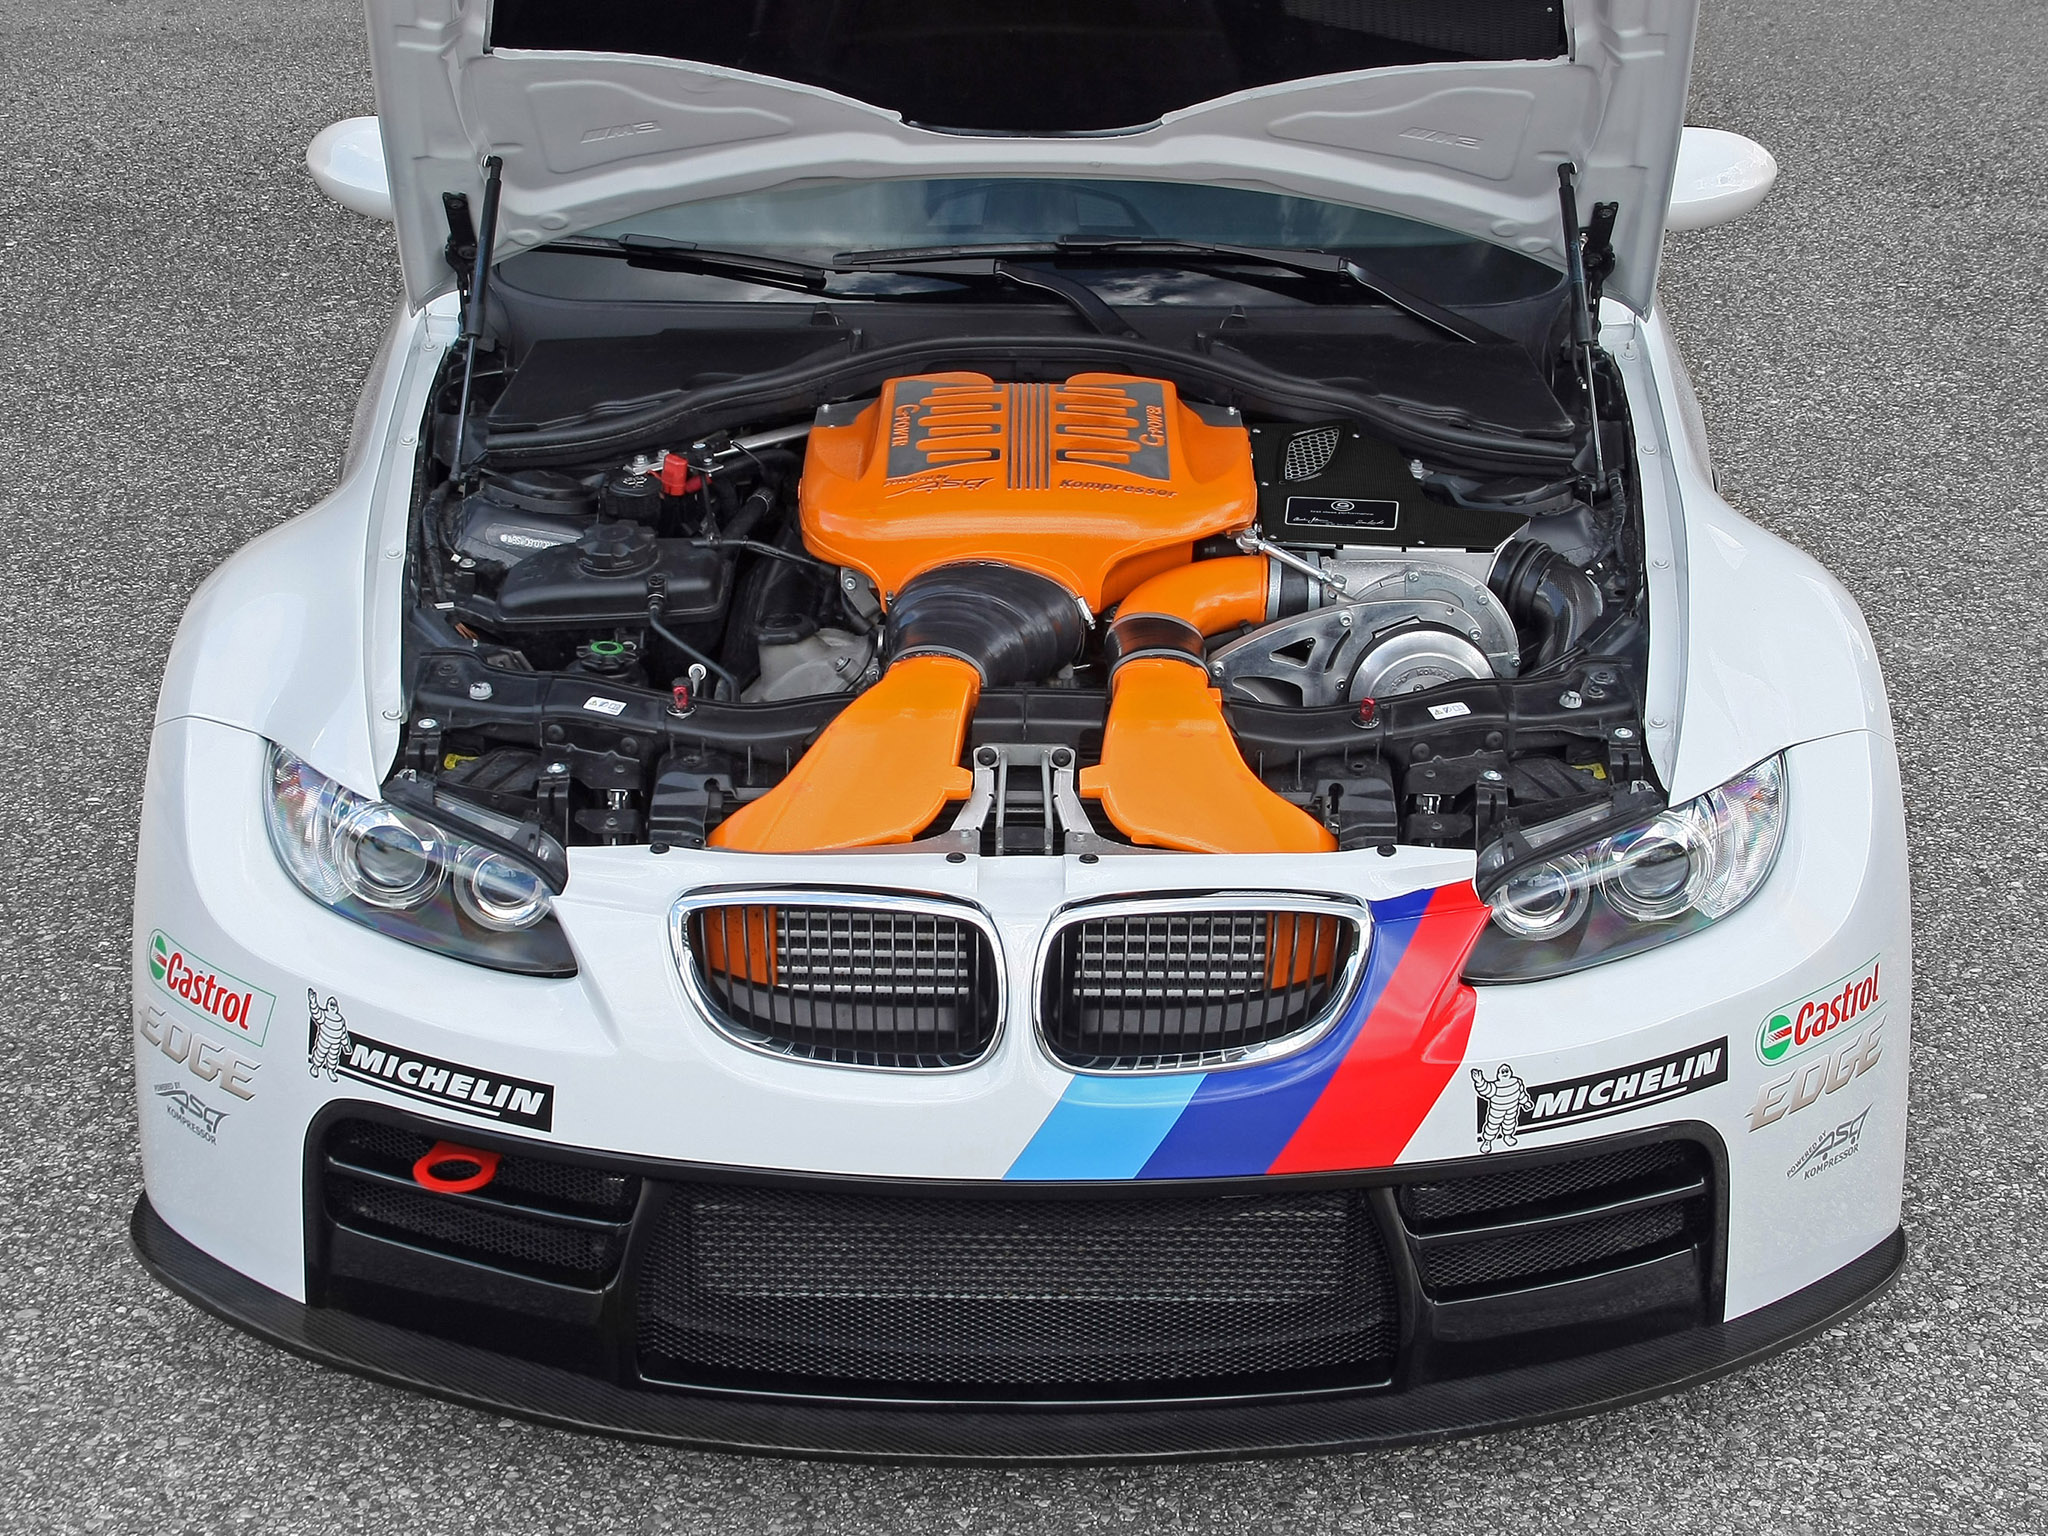 2013 g power bmw m3 gt2 r e92 gt2 tuning race racing engine engines 3 wallpaper 2048x1536. Black Bedroom Furniture Sets. Home Design Ideas